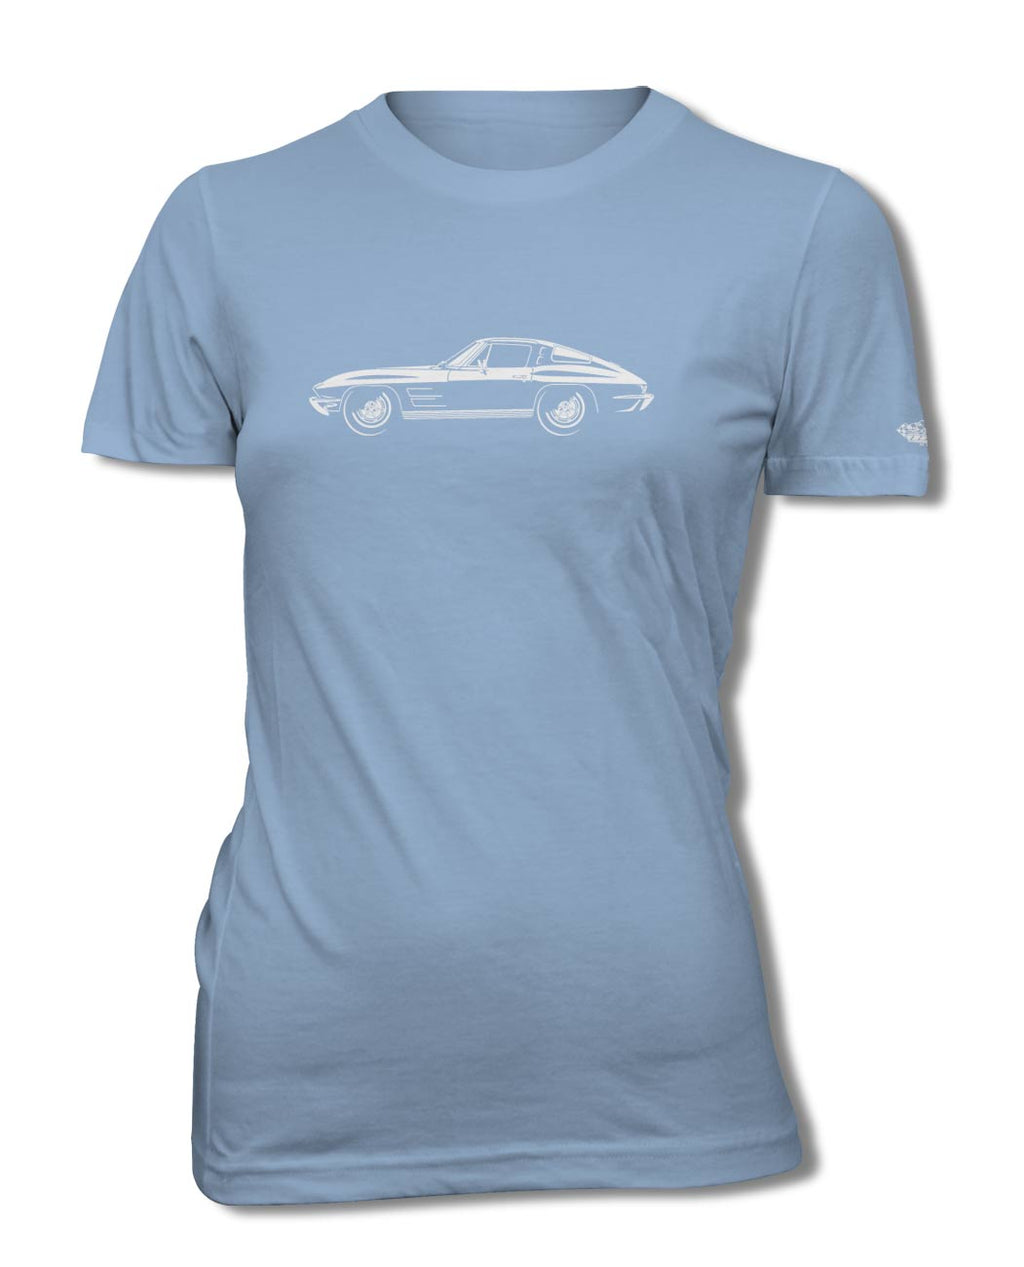 1963 Chevrolet Corvette Sting Ray Split Window C2 T-Shirt - Women - Side View